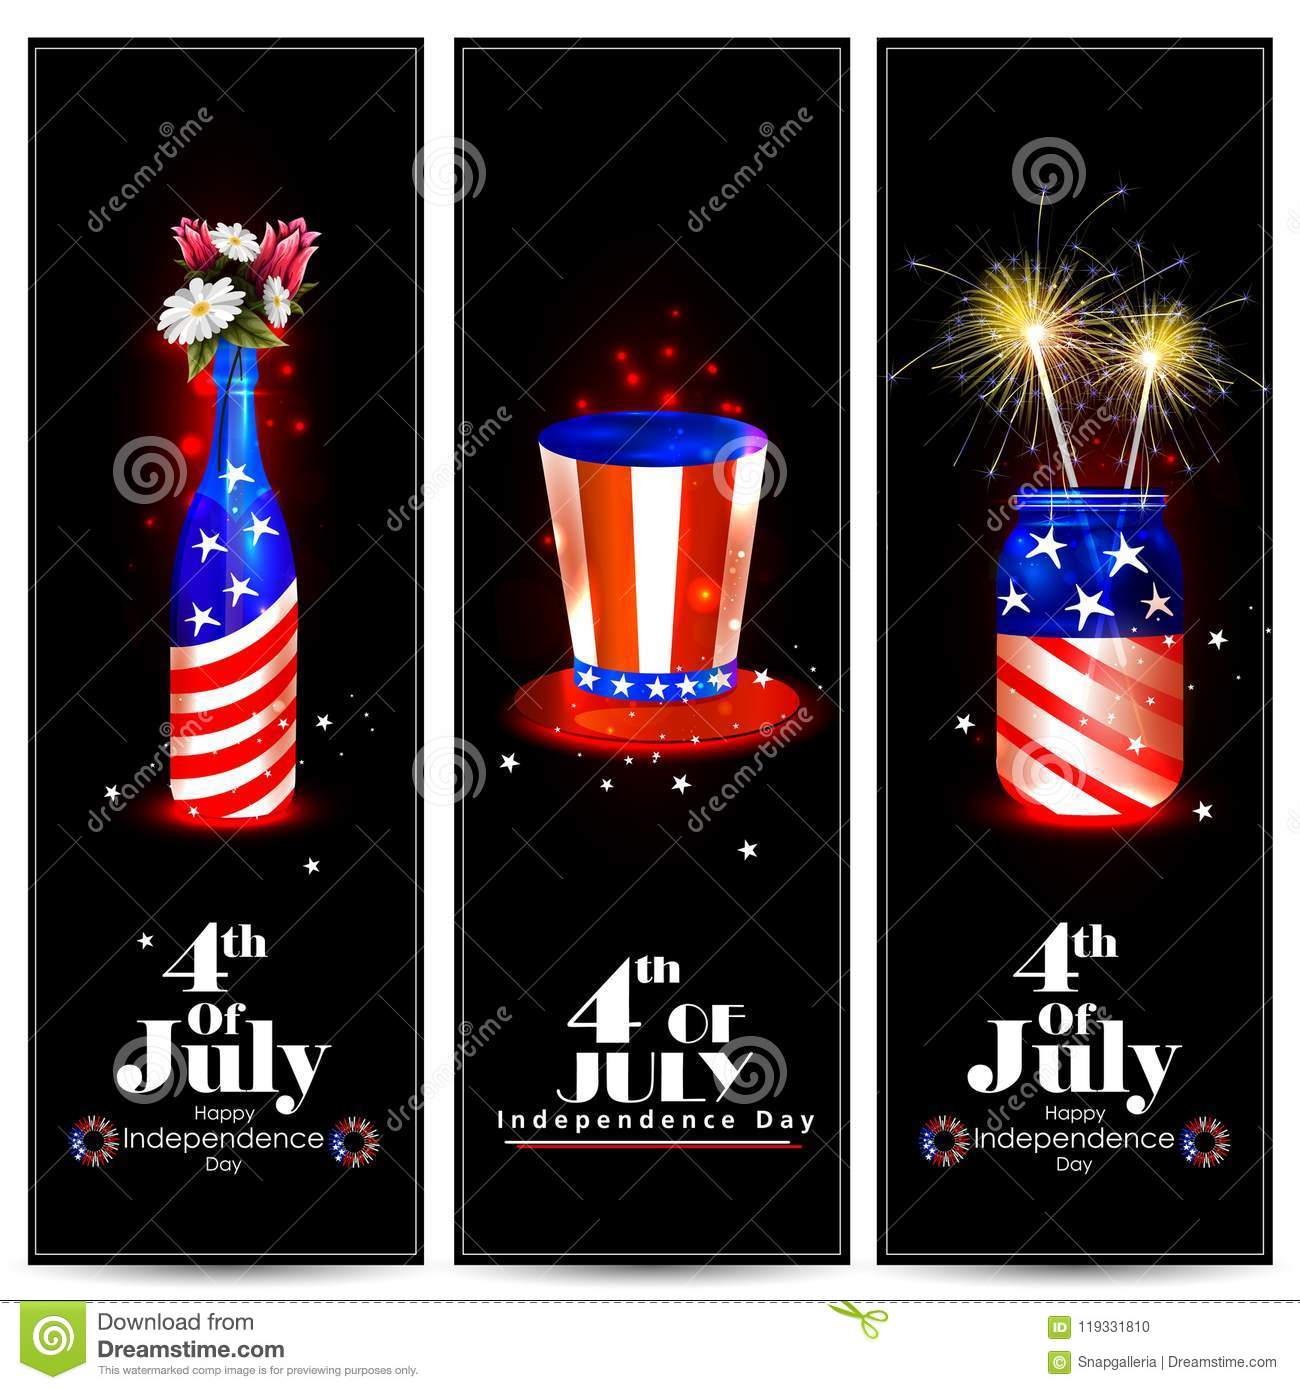 download 4th of july independence day of america background stock vector illustration of flower